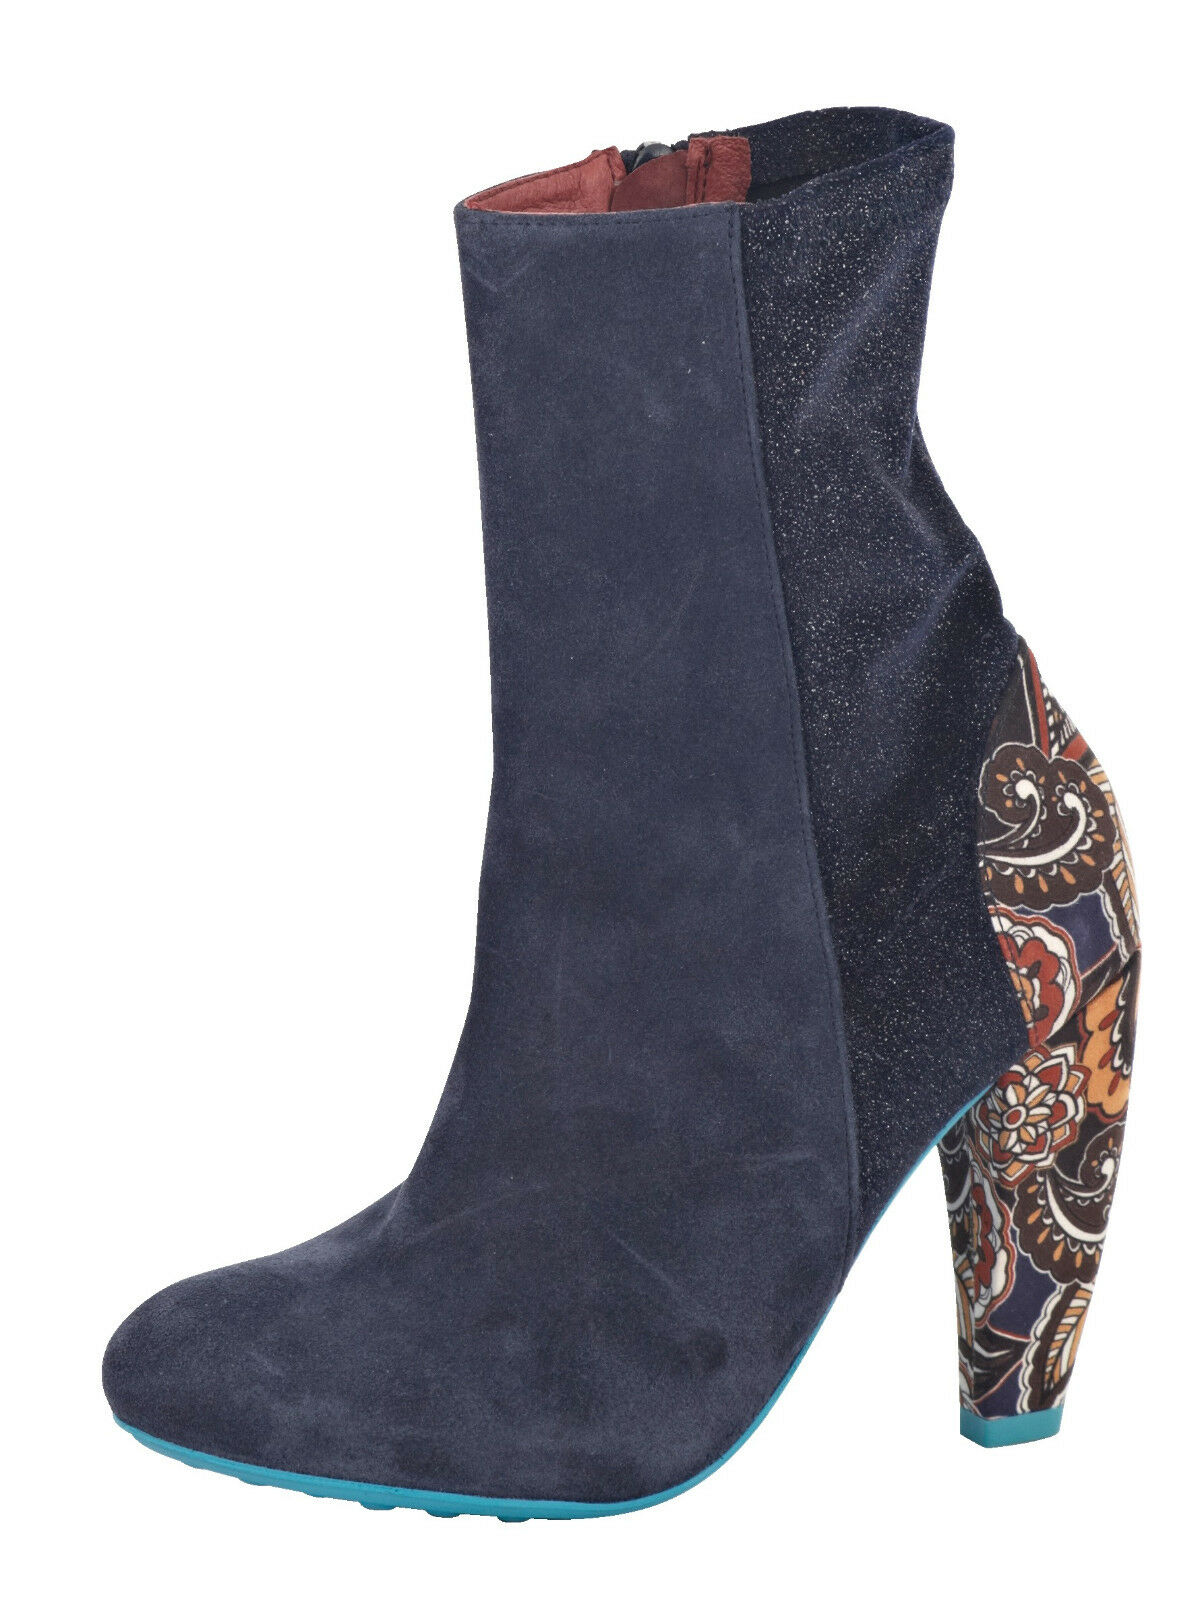 Grandes zapatos con descuento Desigual Damen 70S Blues Disco Pumps Blau Gr. 39, Gr. 40 0318922920